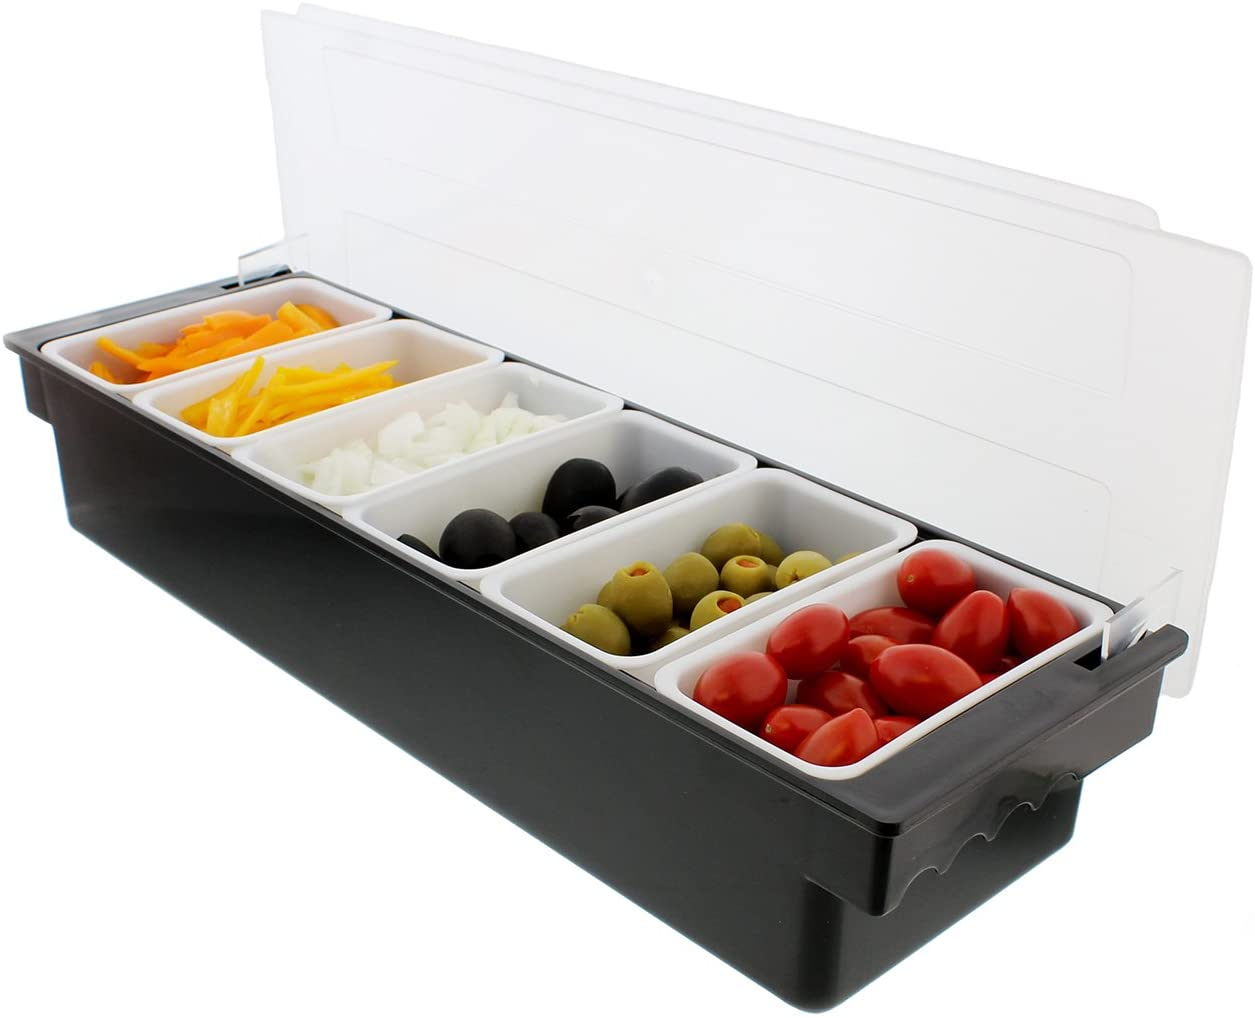 Ice Cooled Condiment Serving Container Garnish Tray Bar Ranking TOP19 Chilled quality assurance